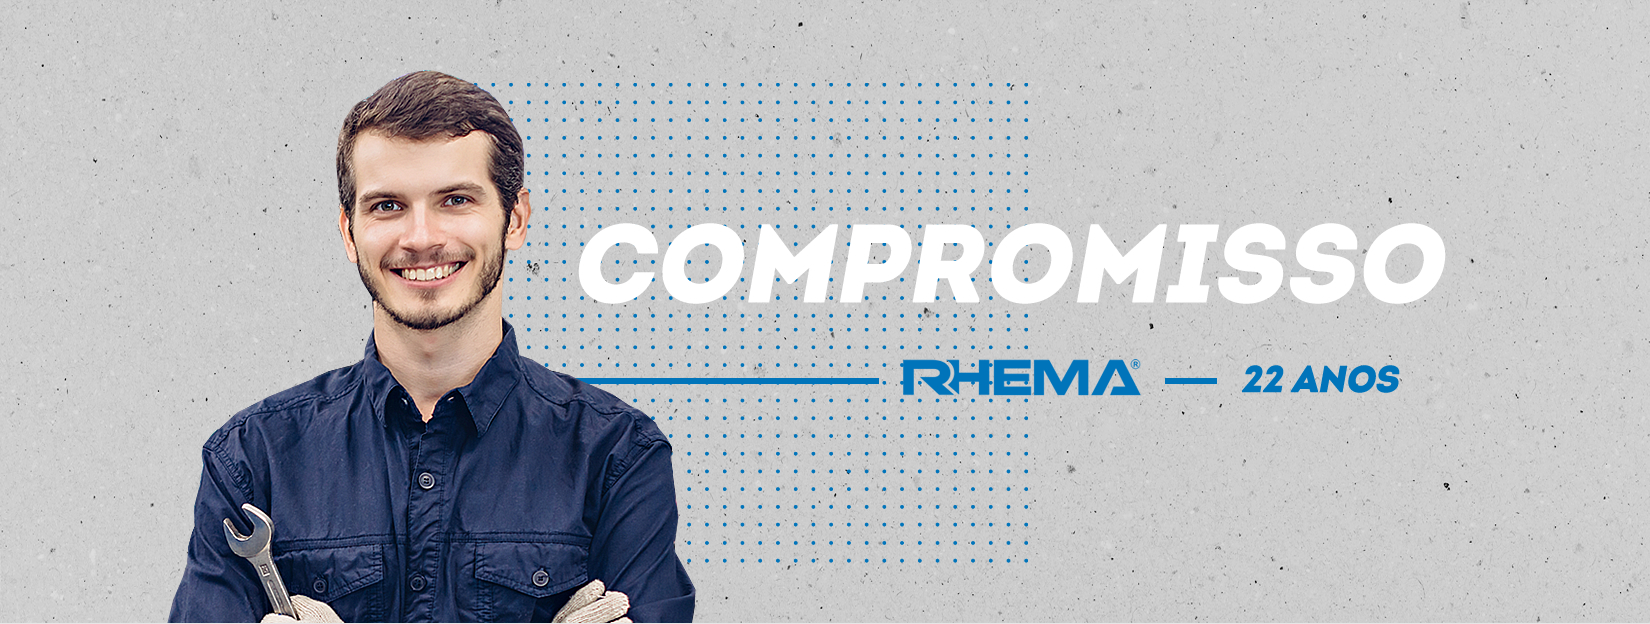 Banner Principal (compromisso)